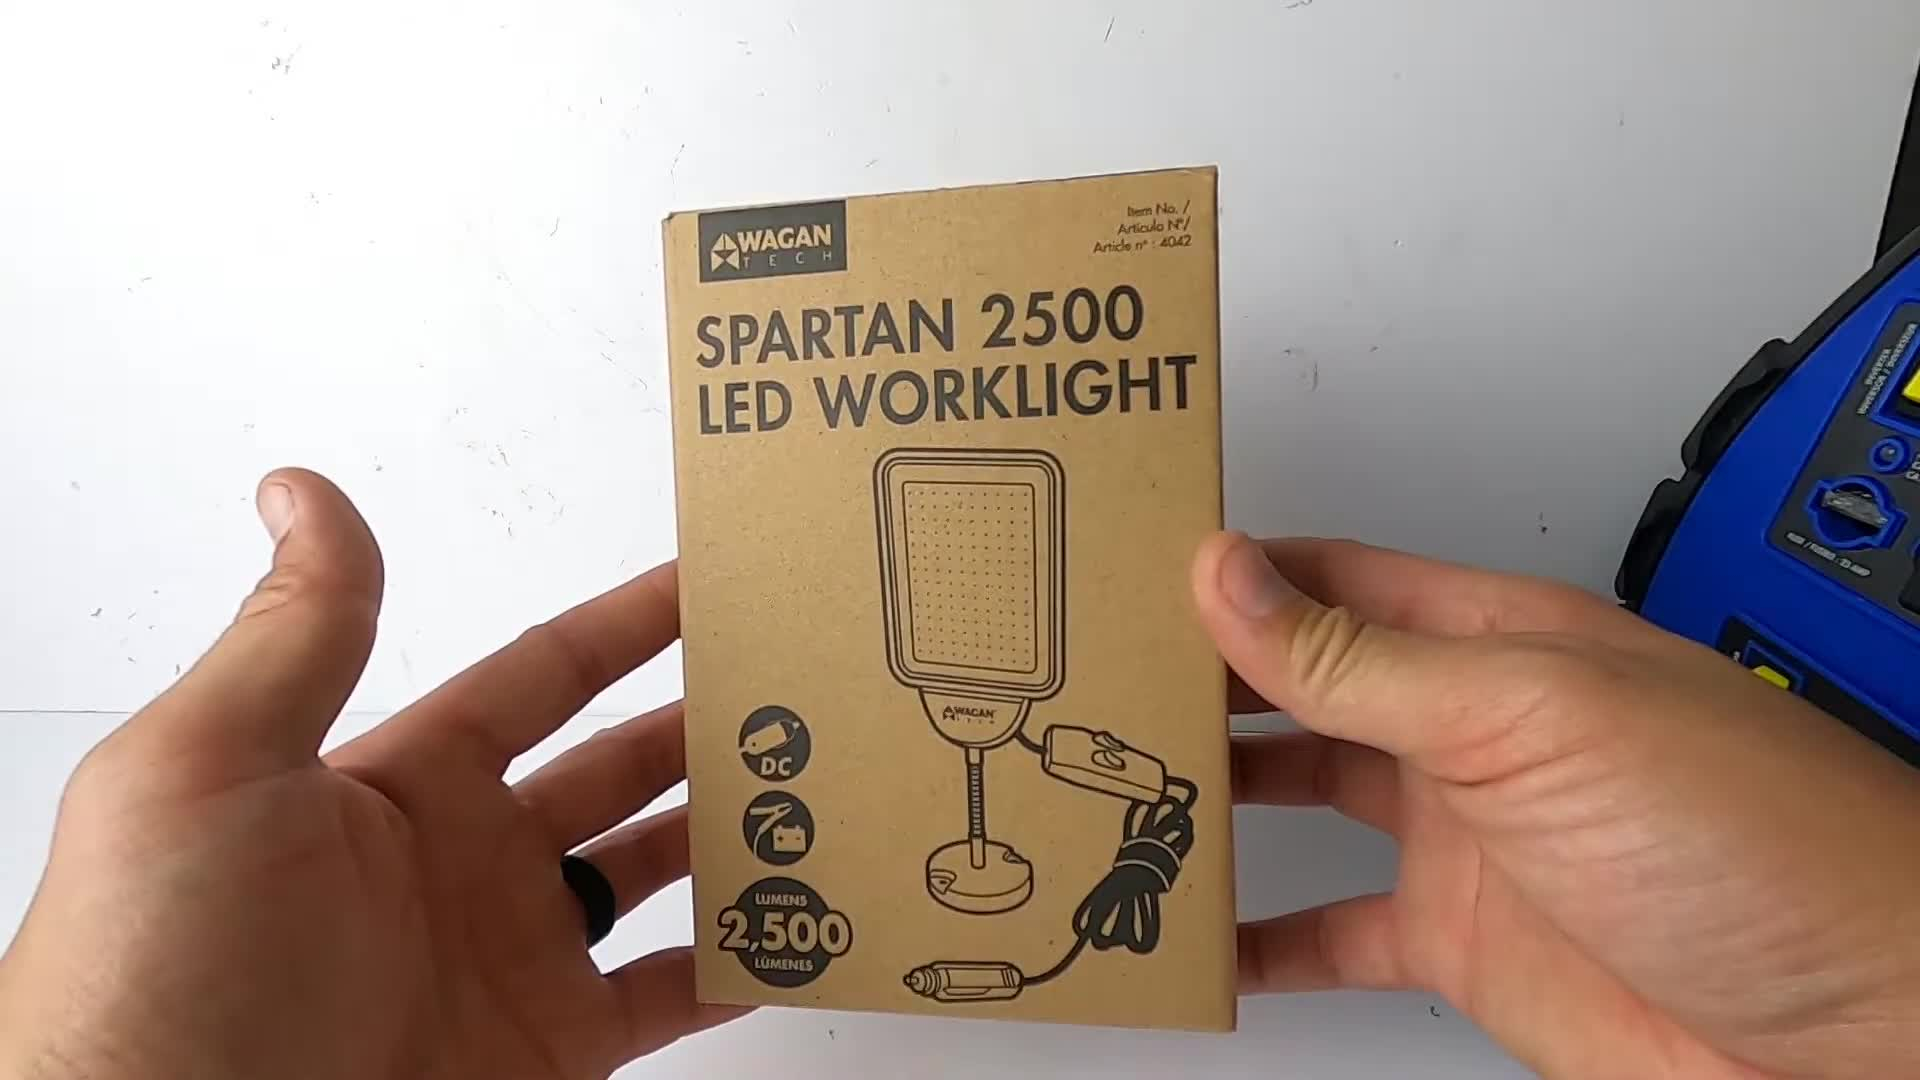 Unboxing and Demo of the Spartan 2500 LED Worklight